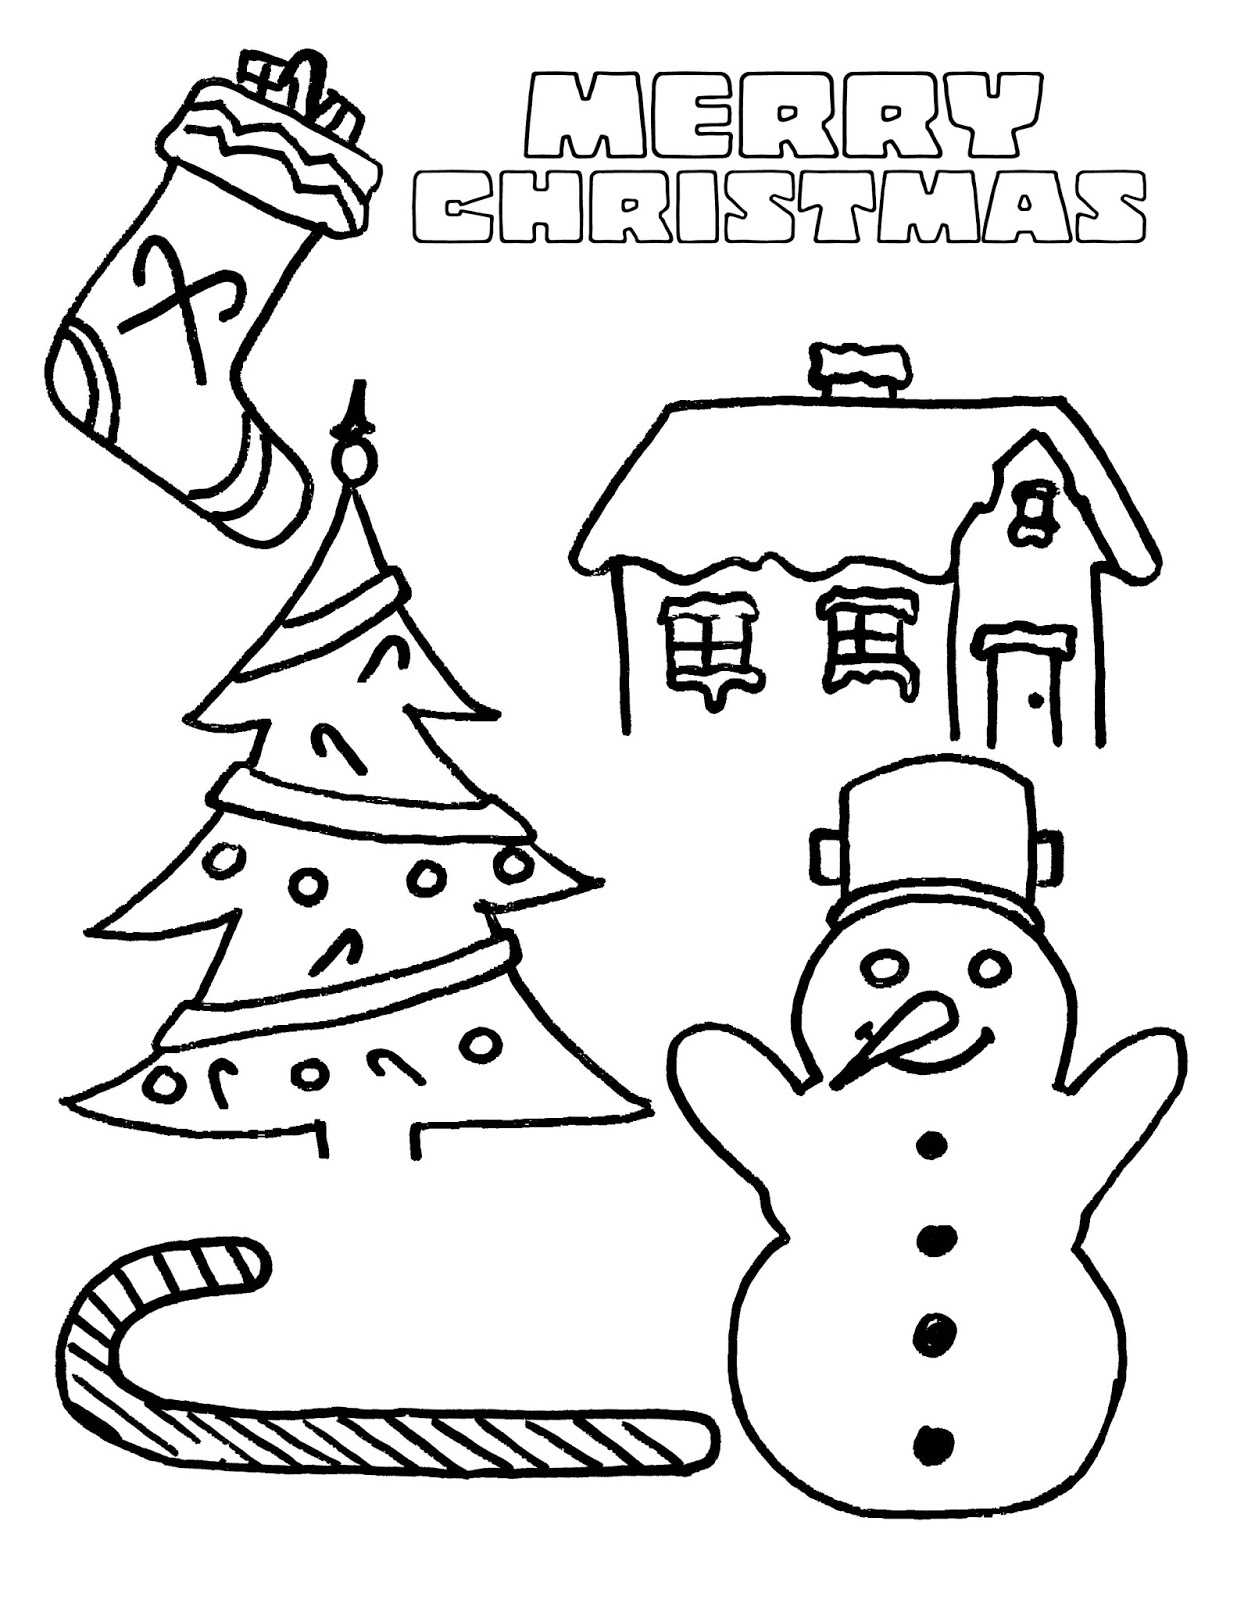 christmas colouring pages for older kids jarvis varnado 15 christmas tree coloring pages for kids christmas older kids colouring pages for